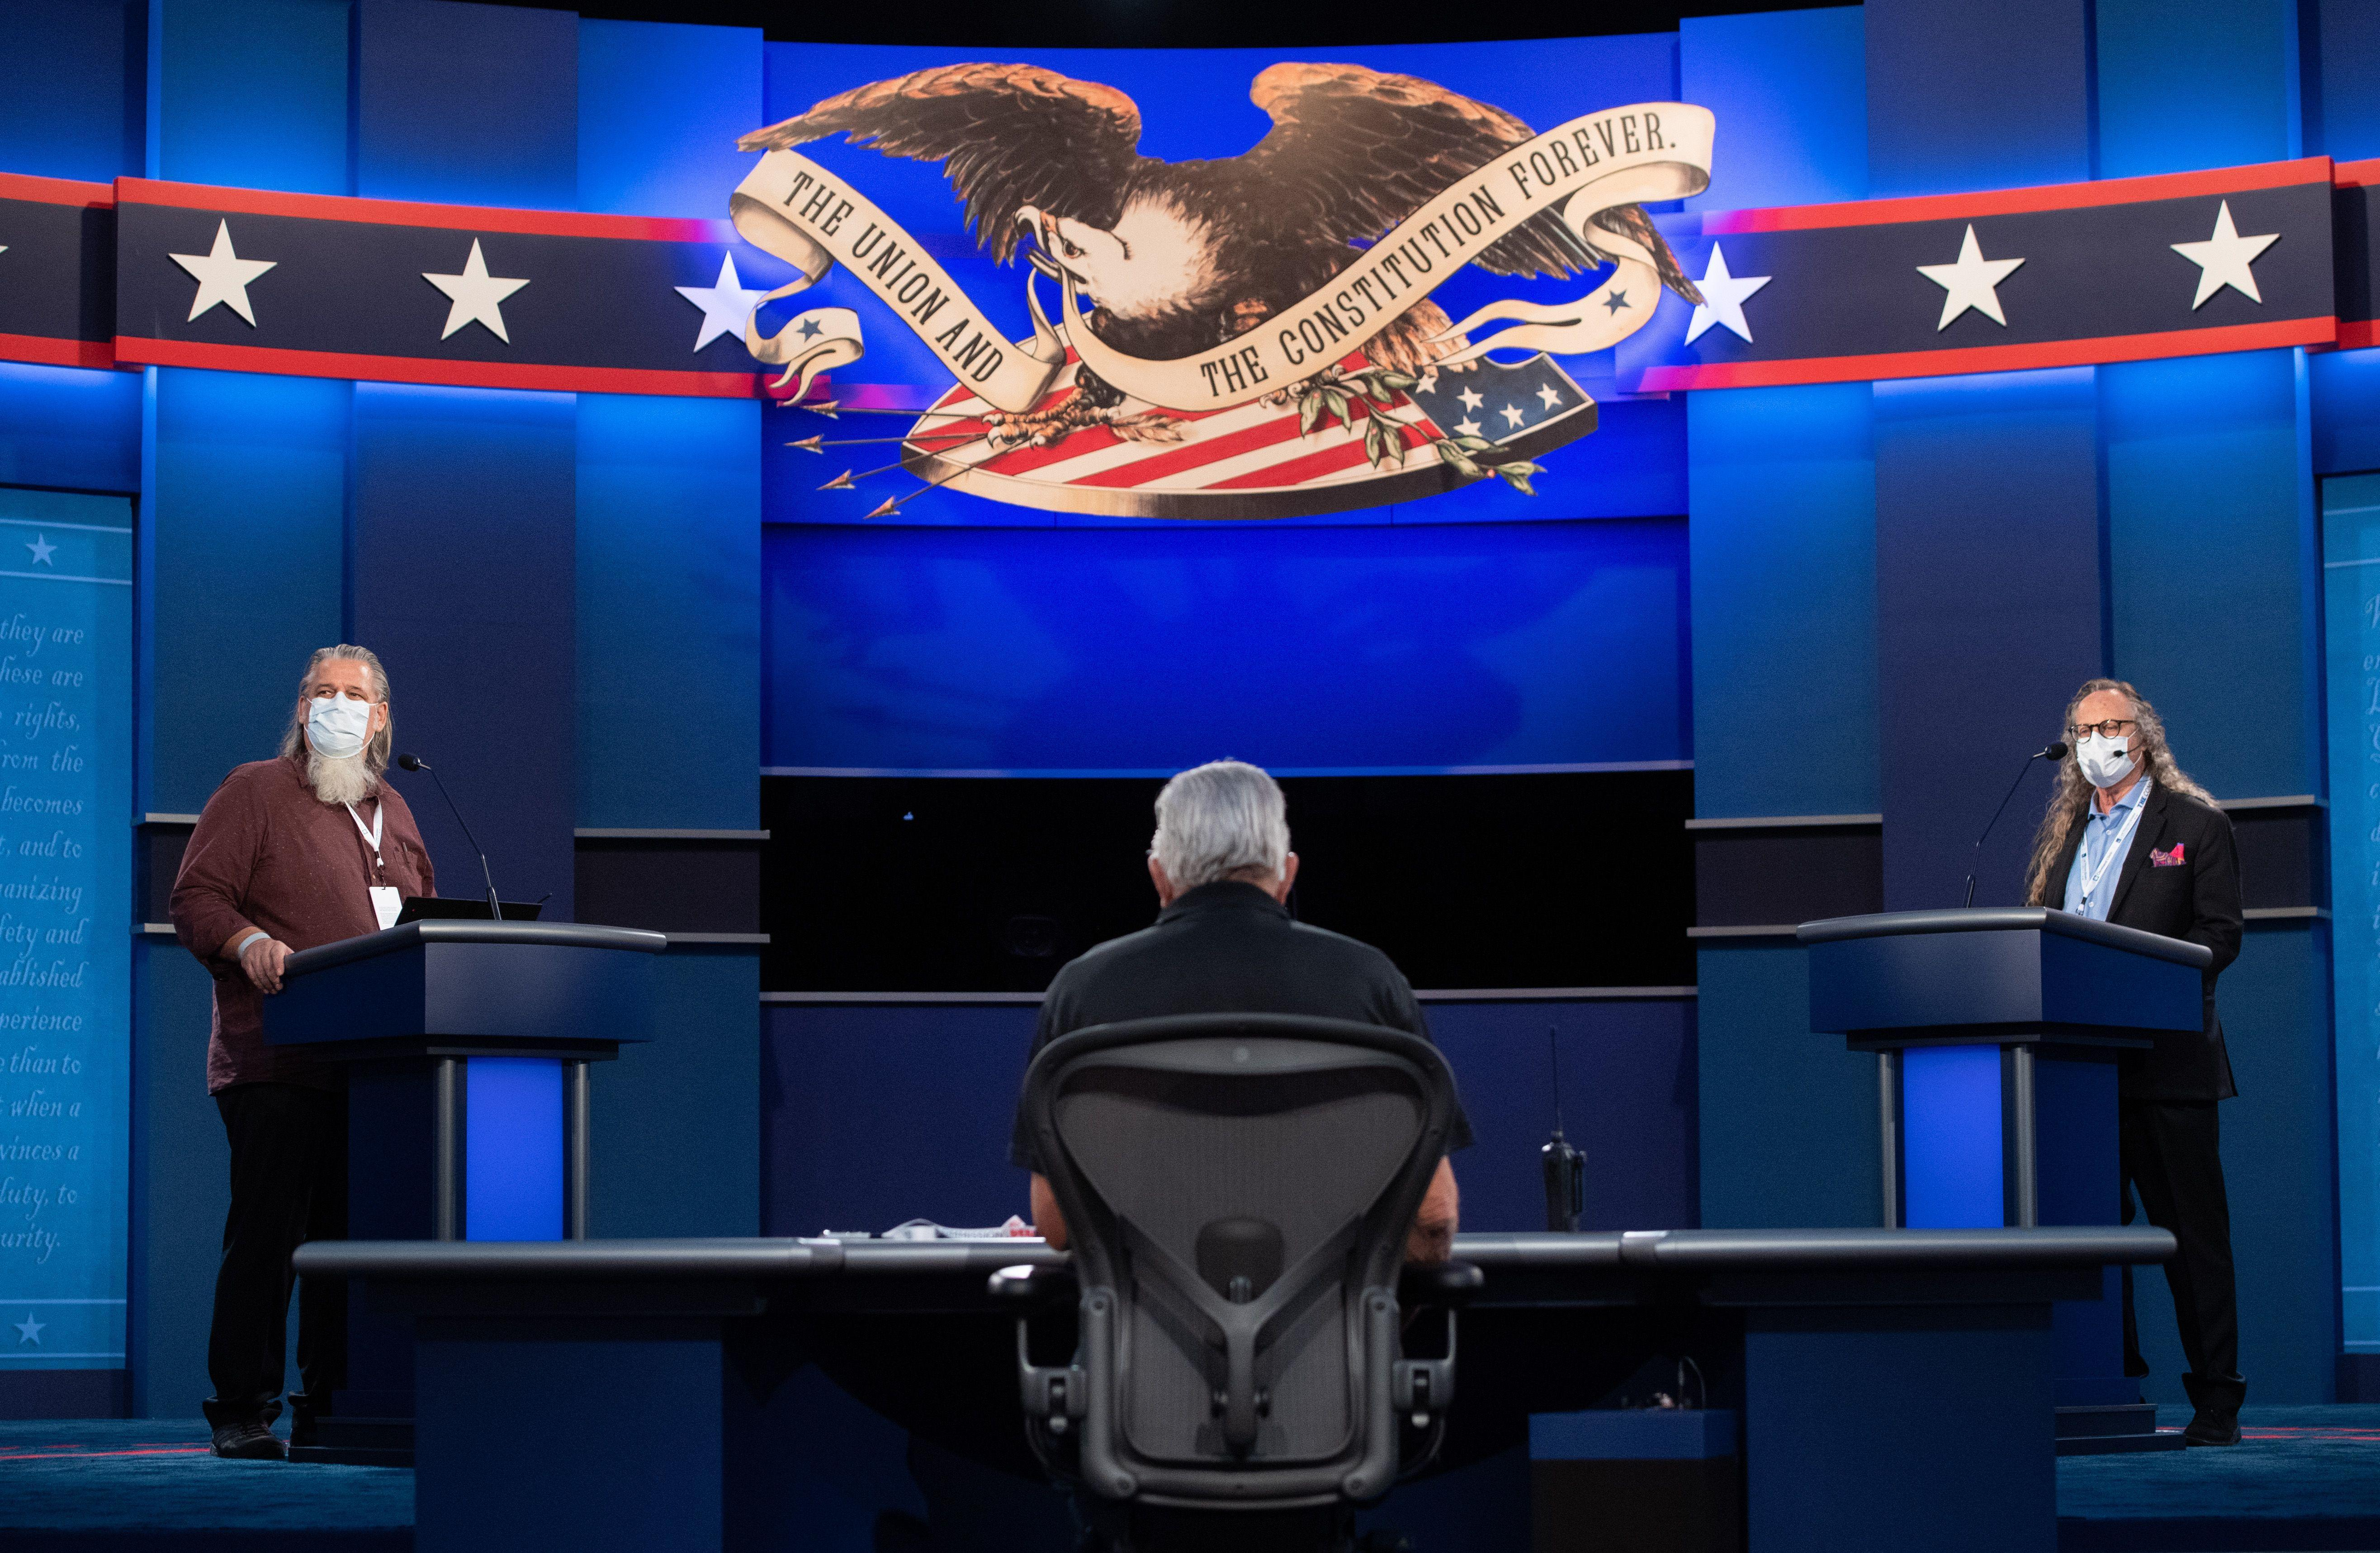 How to watch the first presidential debate between Trump and Biden